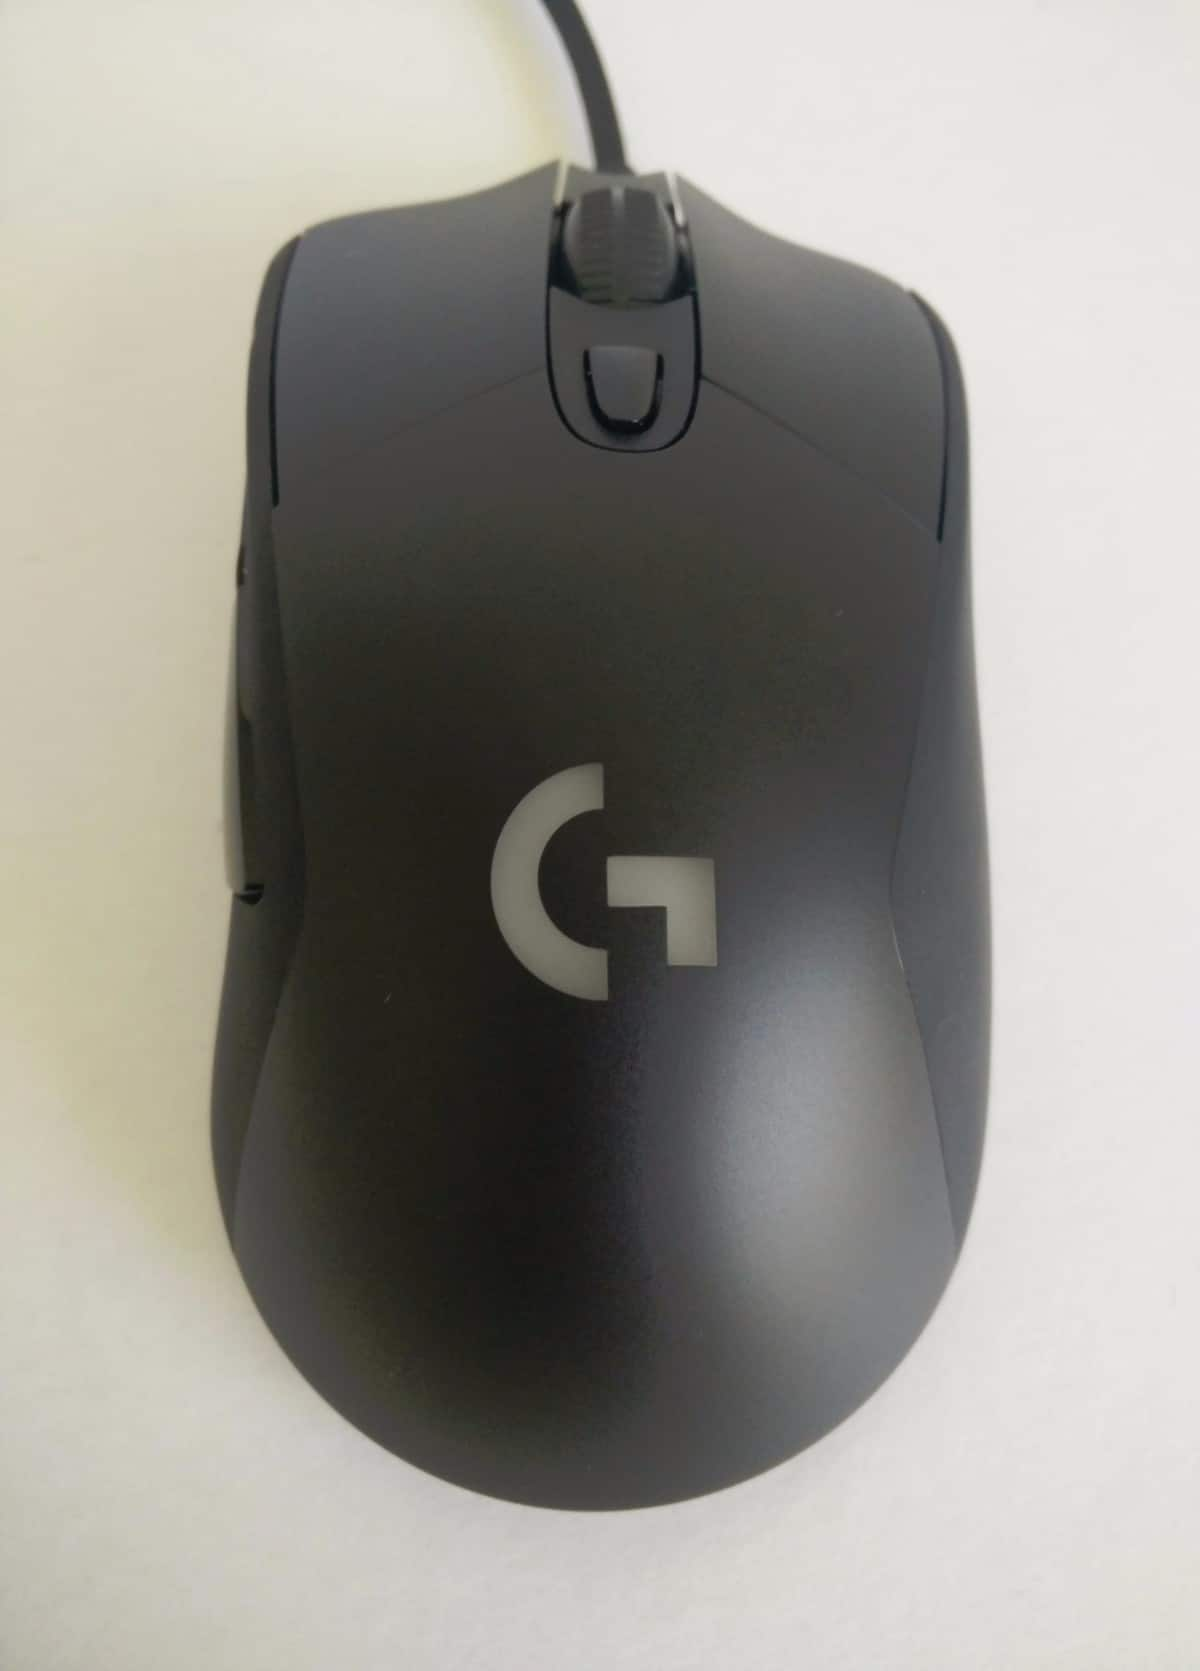 logitech-g403-Photos-11 Logitech G403 Prodigy Wired Gaming Mouse Review